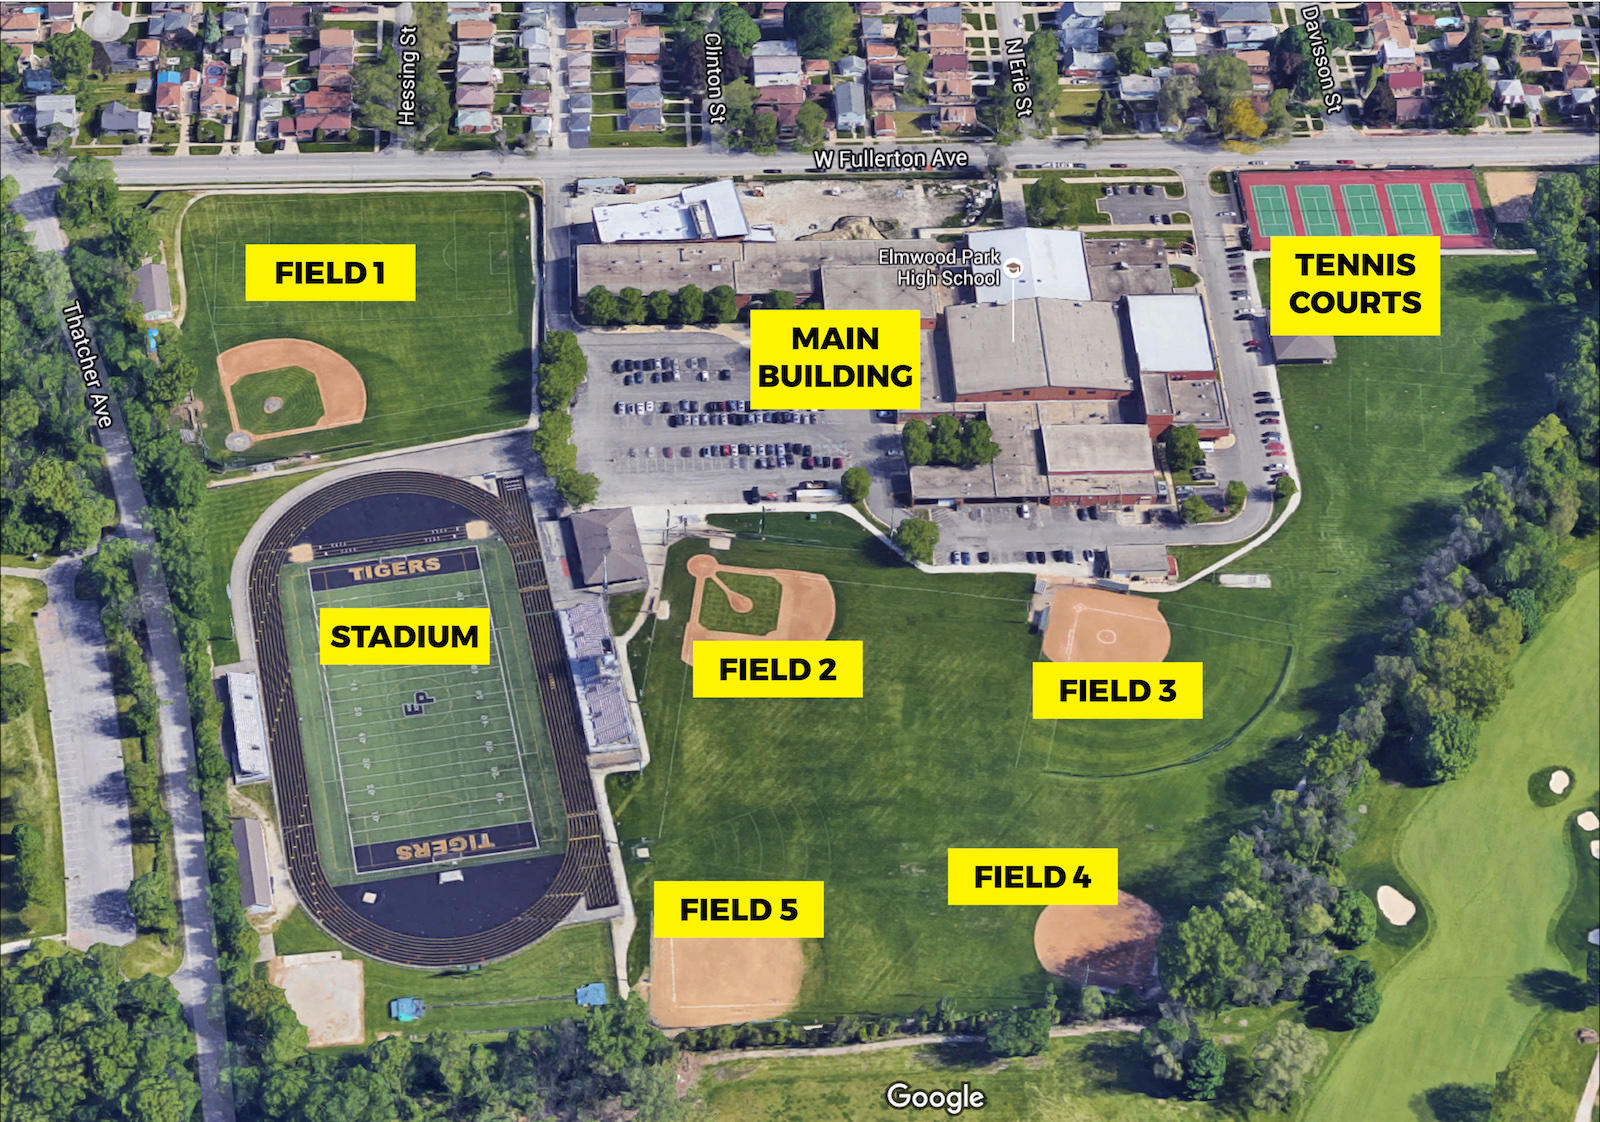 Aerial photo of the EPHS campus, with athletic venues designated by name.